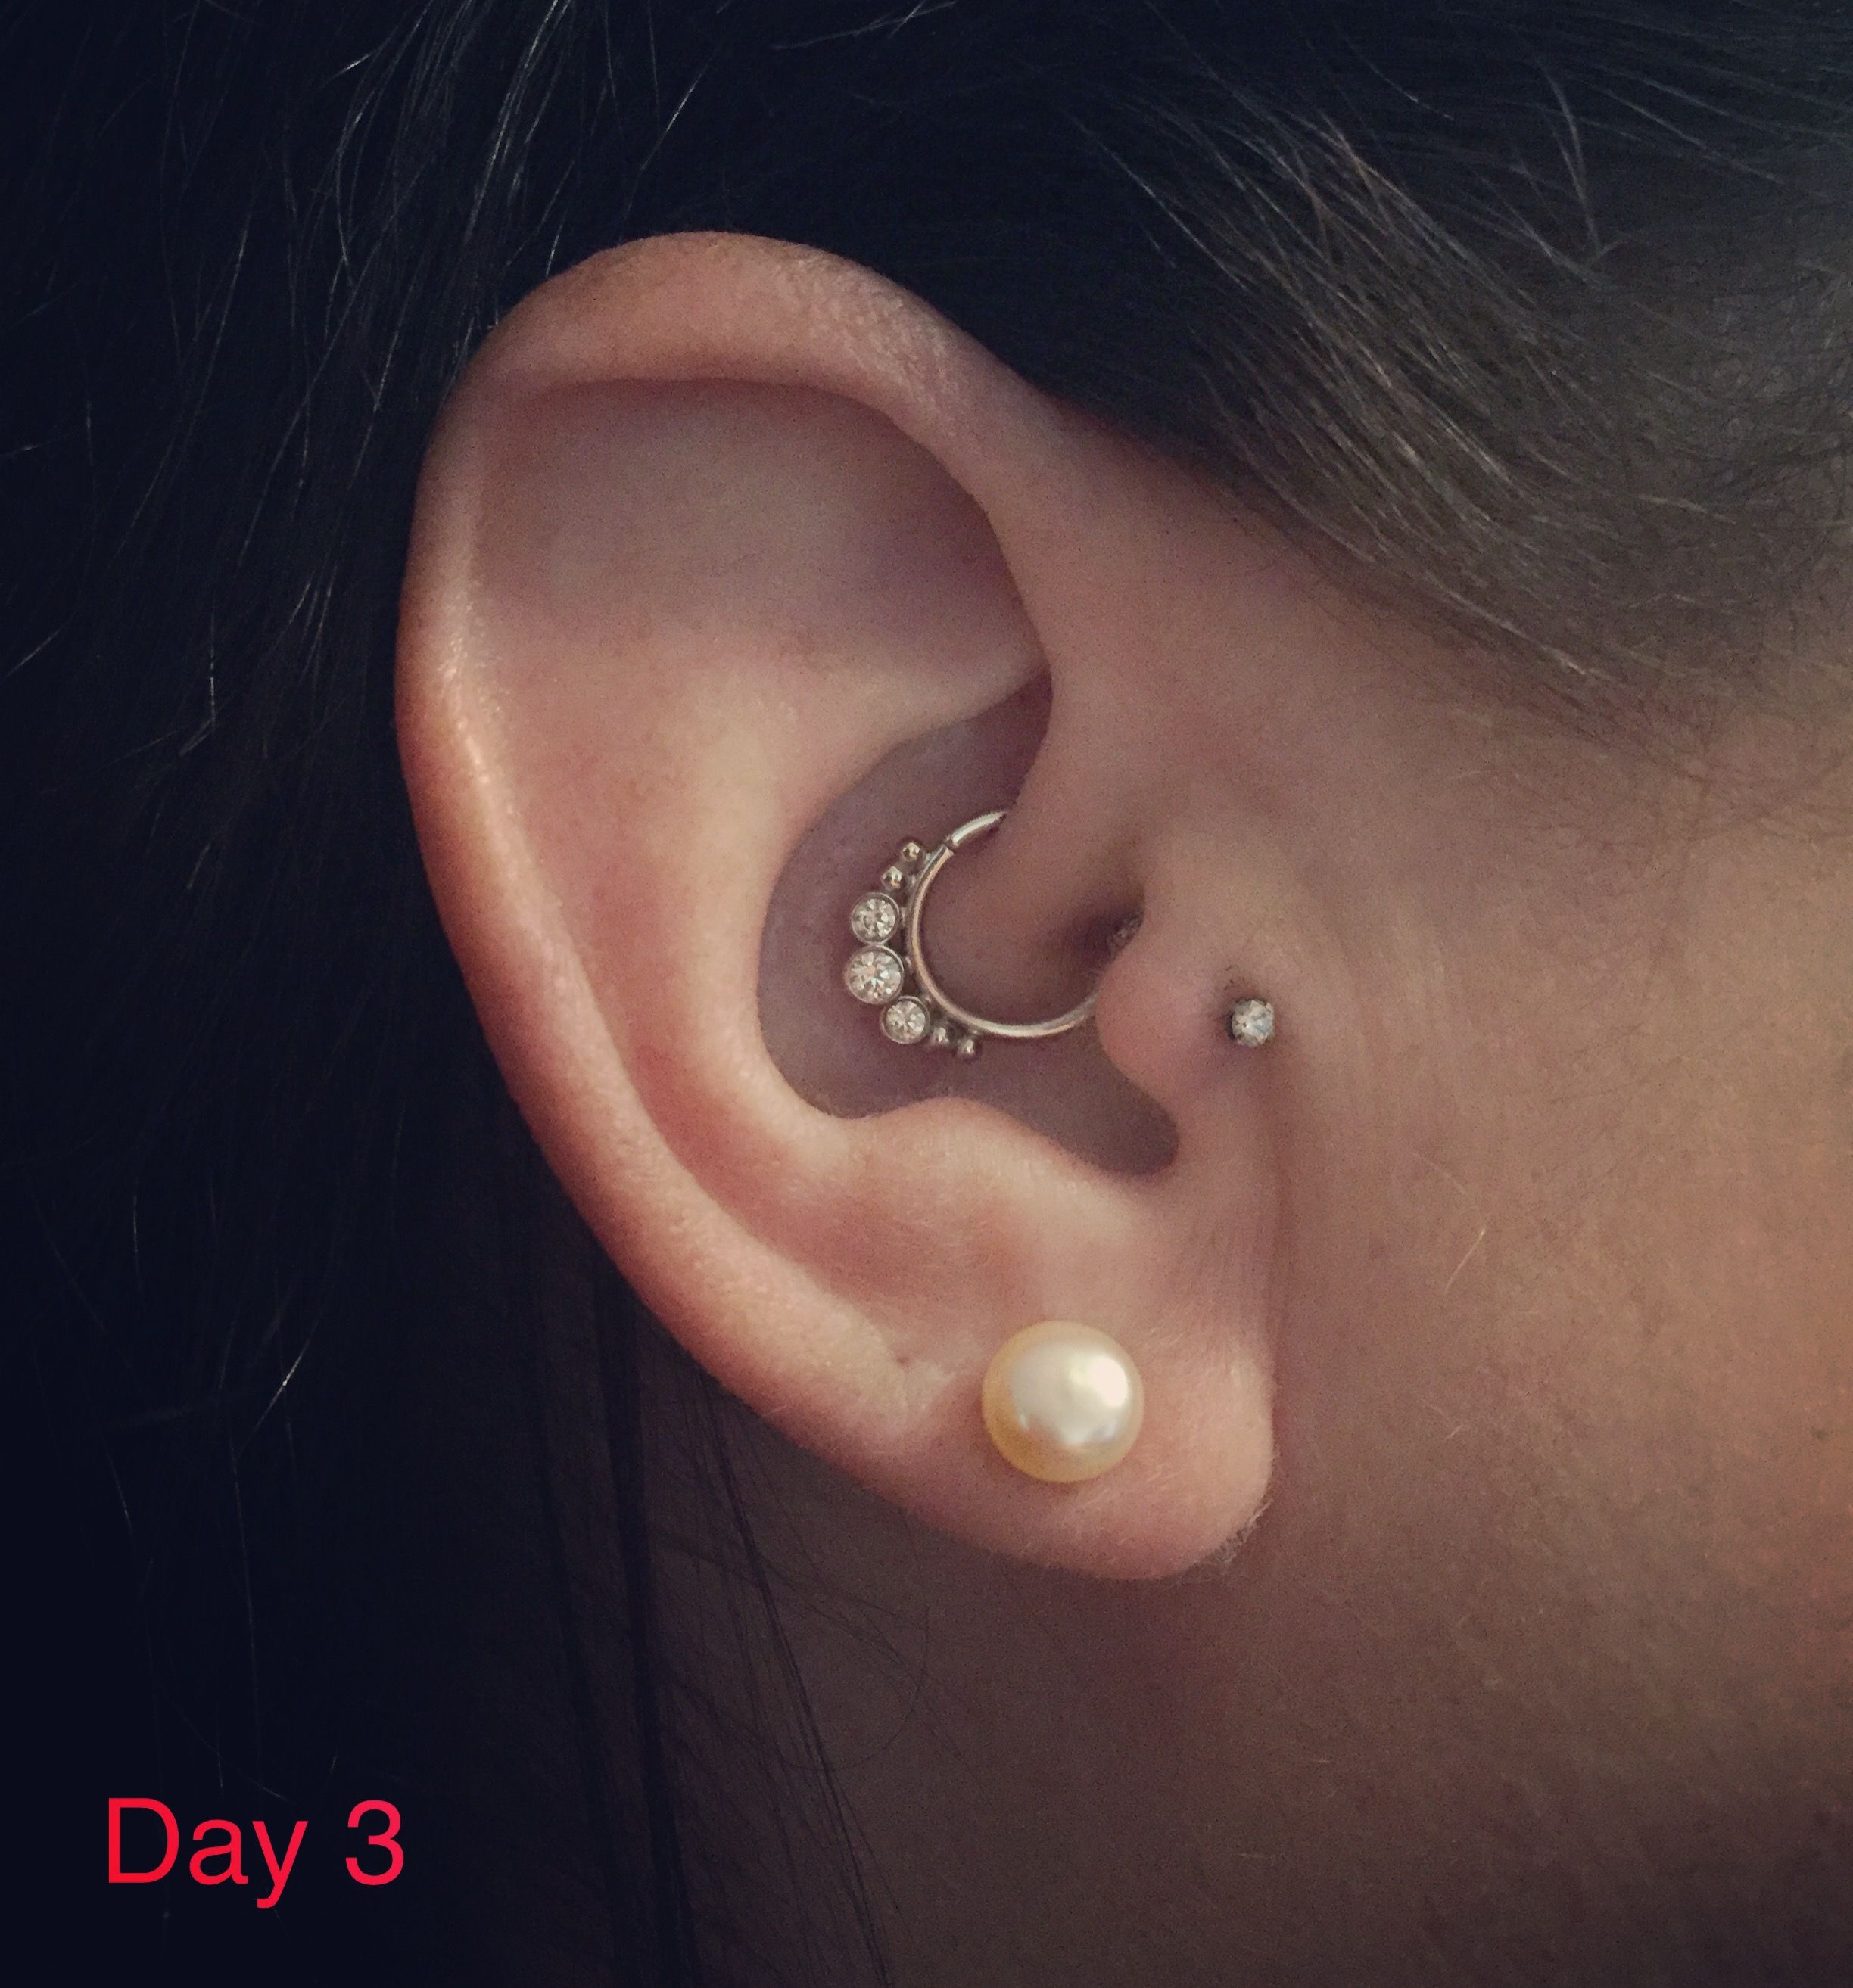 Day 3 After Tragus And Daith Piercing Very Little Swelling And No